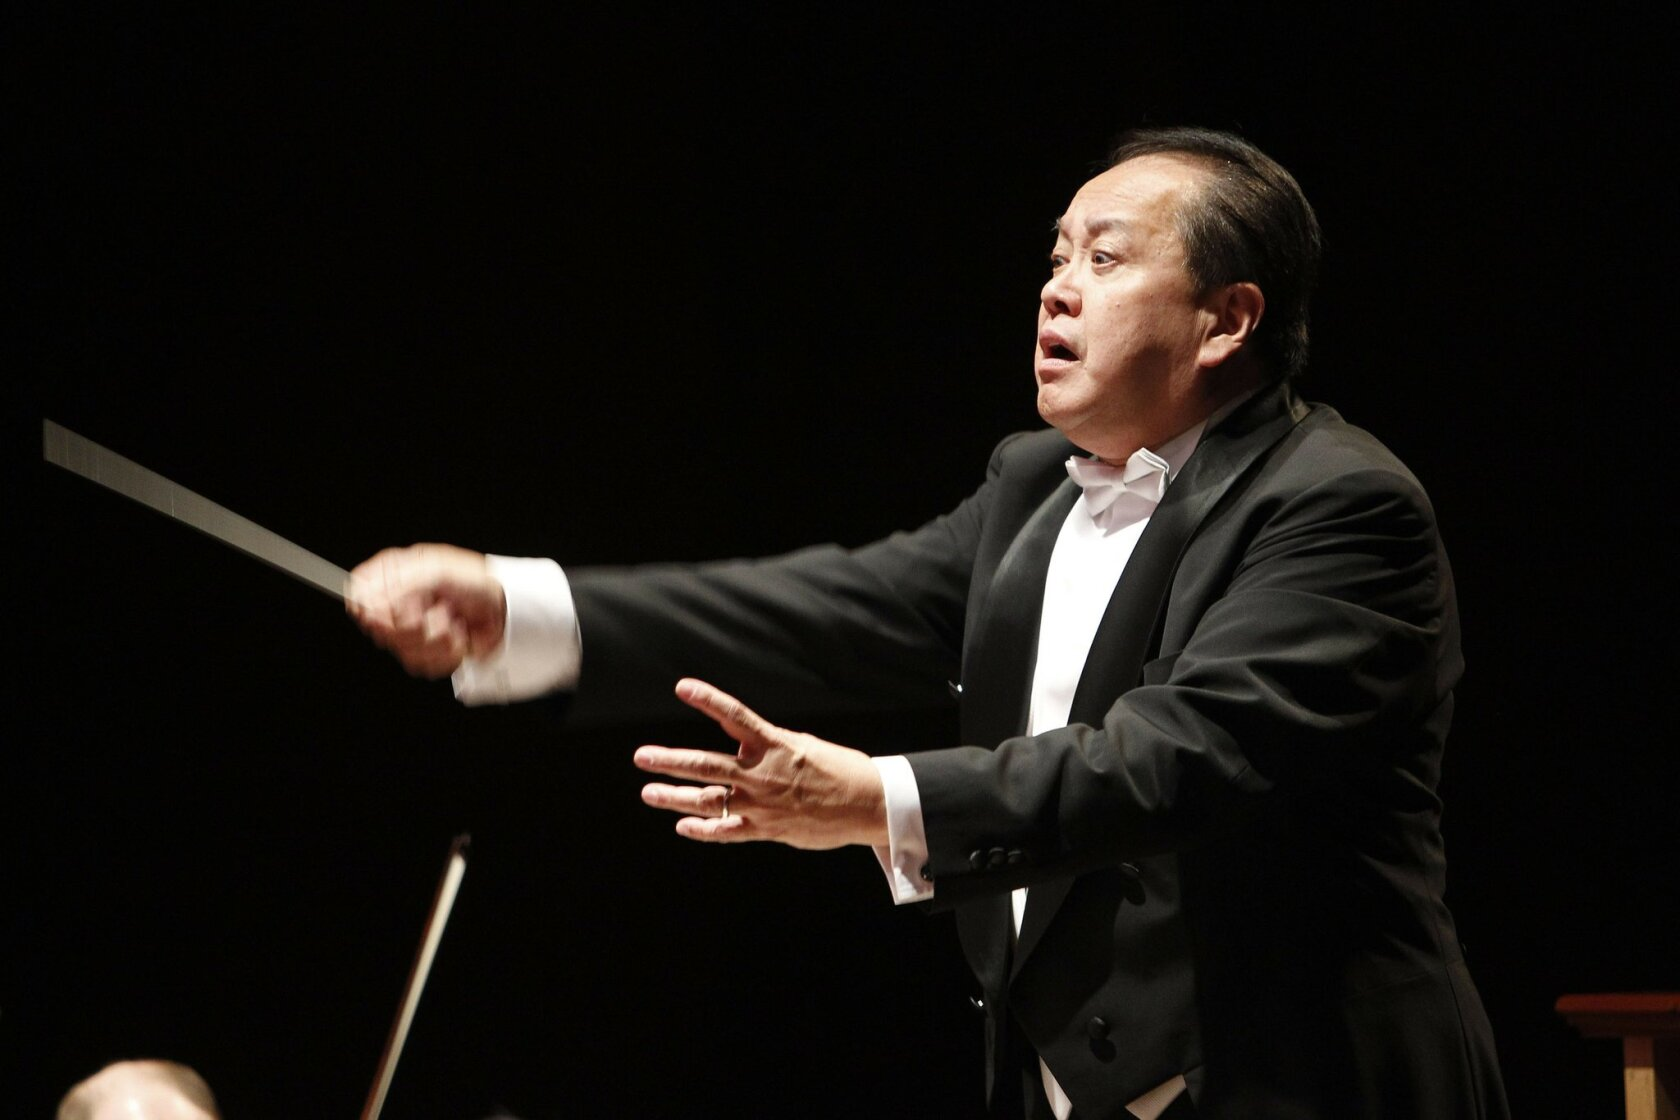 Jahja Ling to leave San Diego Symphony after 2016-17 season - The